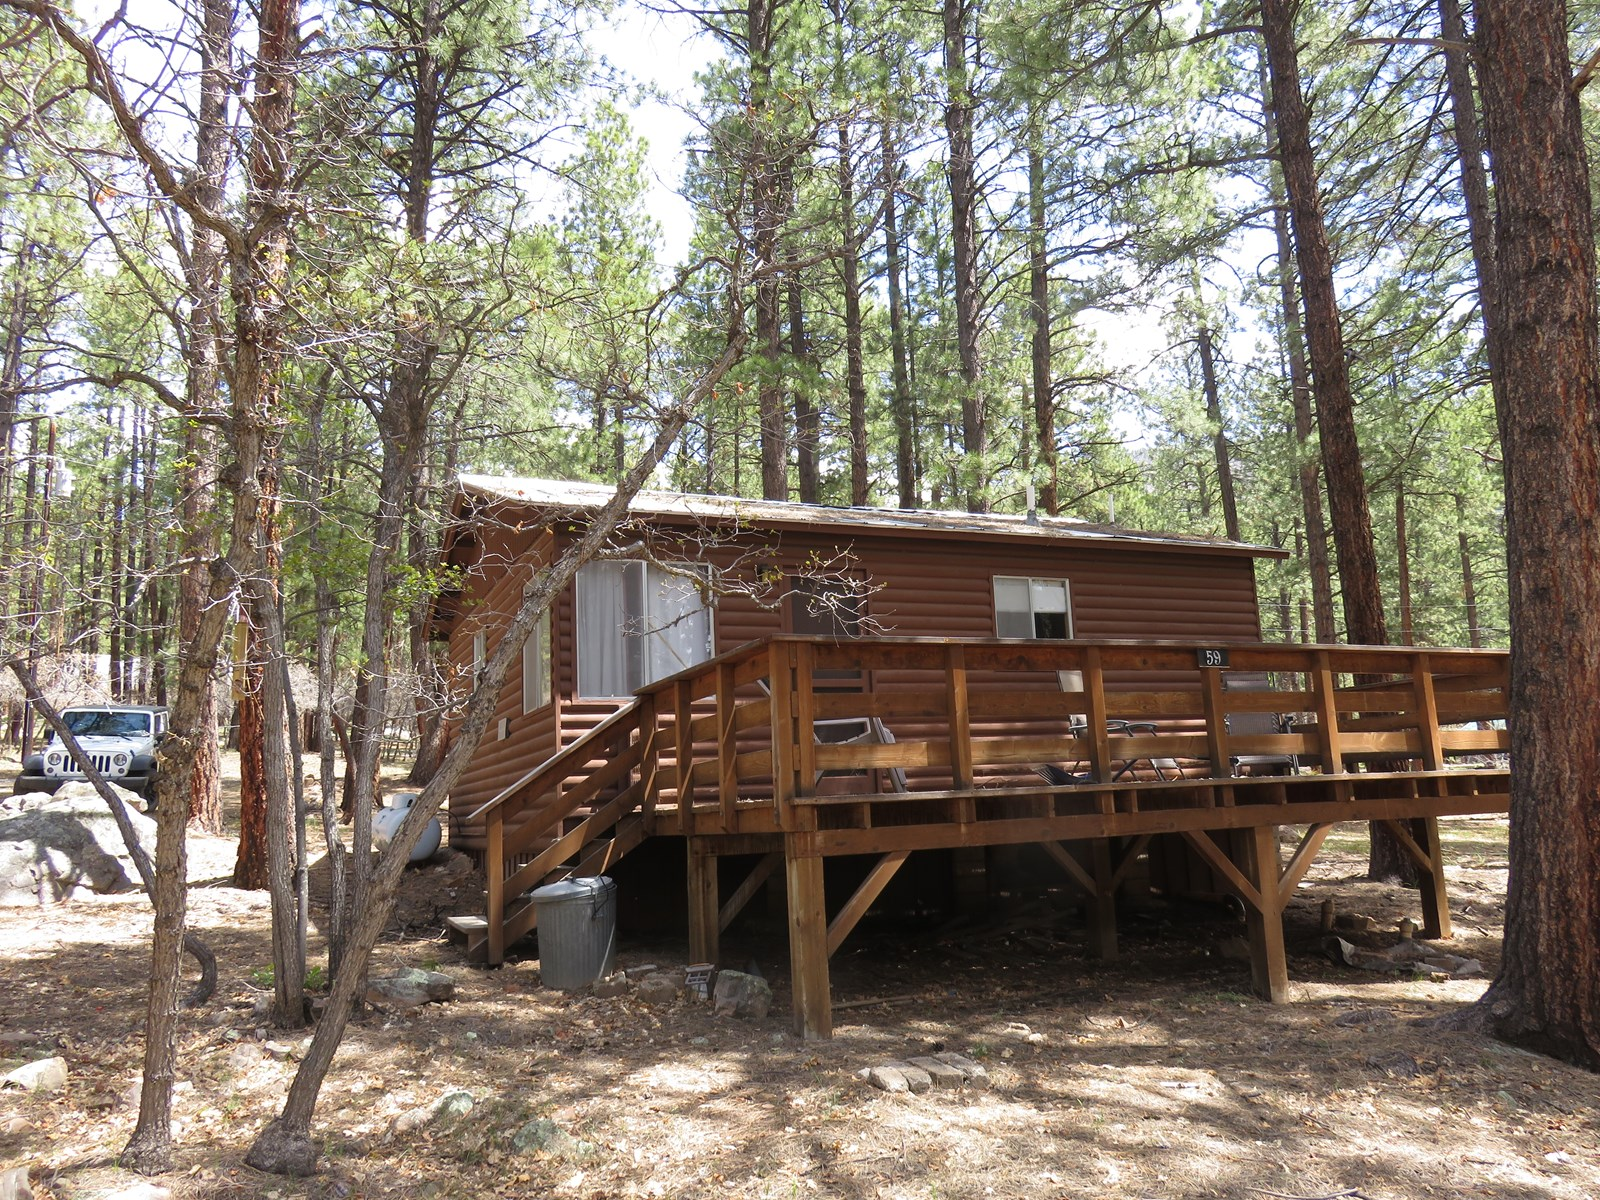 Chama New Mex Brazos Cabin for Sale Northern NM Real Estate